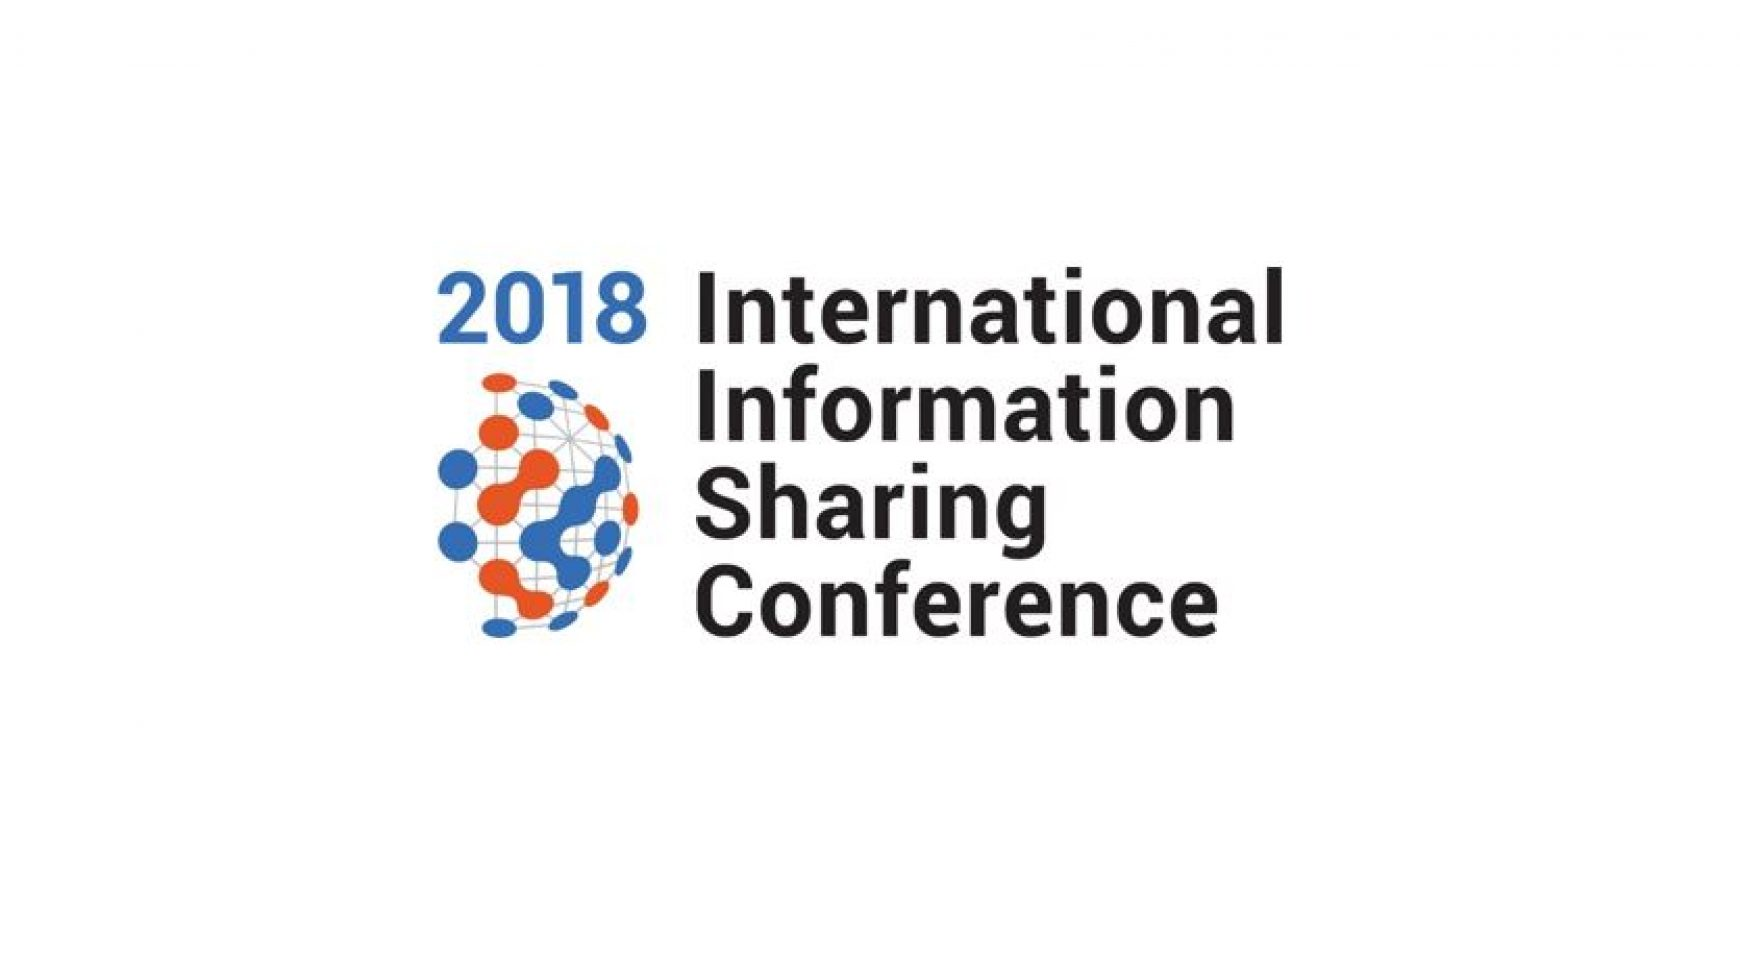 ISAO Standards Organization Announces Second Annual International Information Sharing Conference